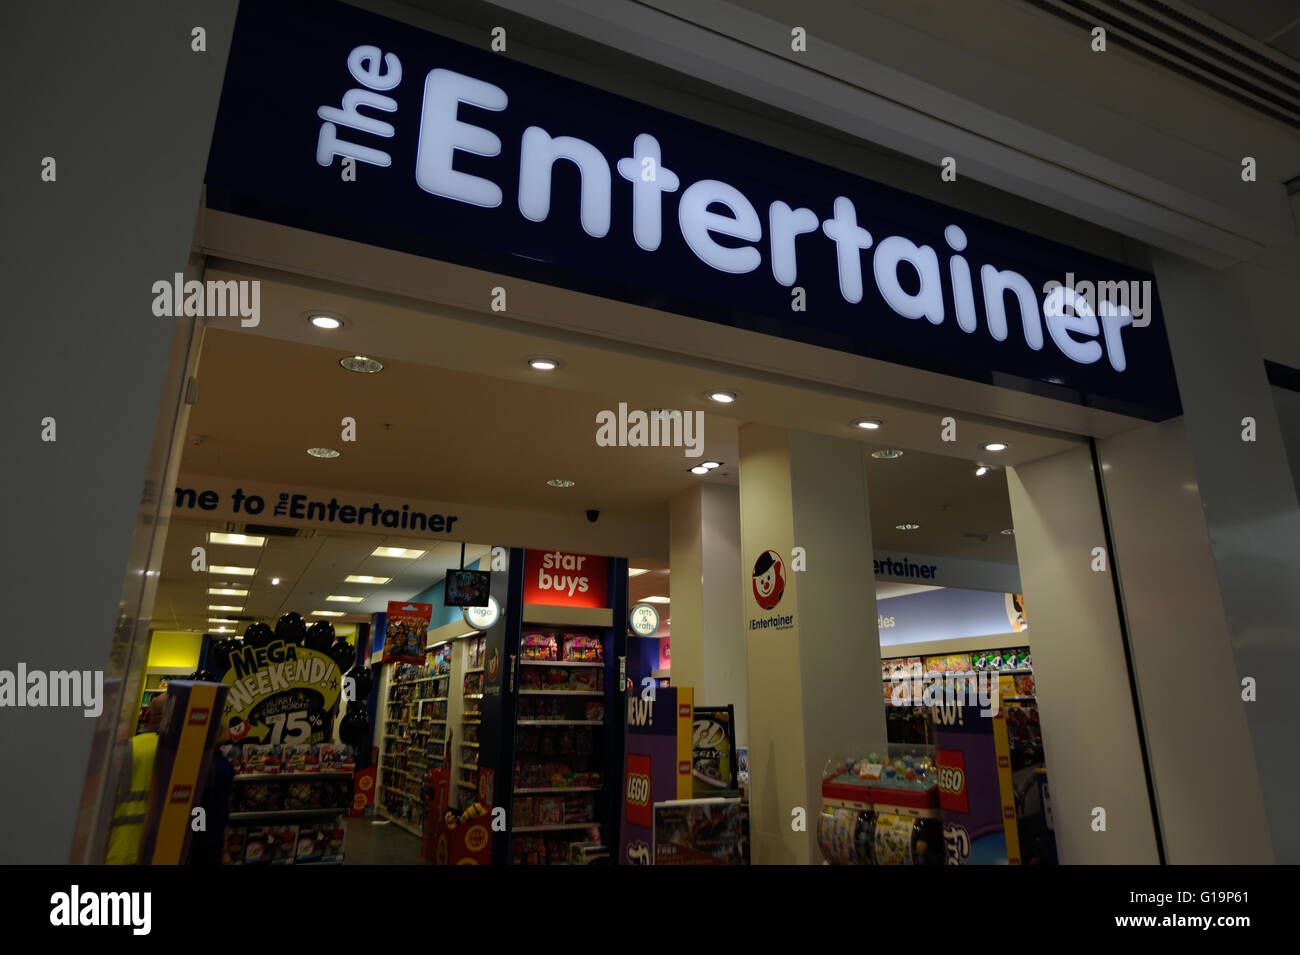 The Entertainer,toy shop,infant,UK - Stock Image